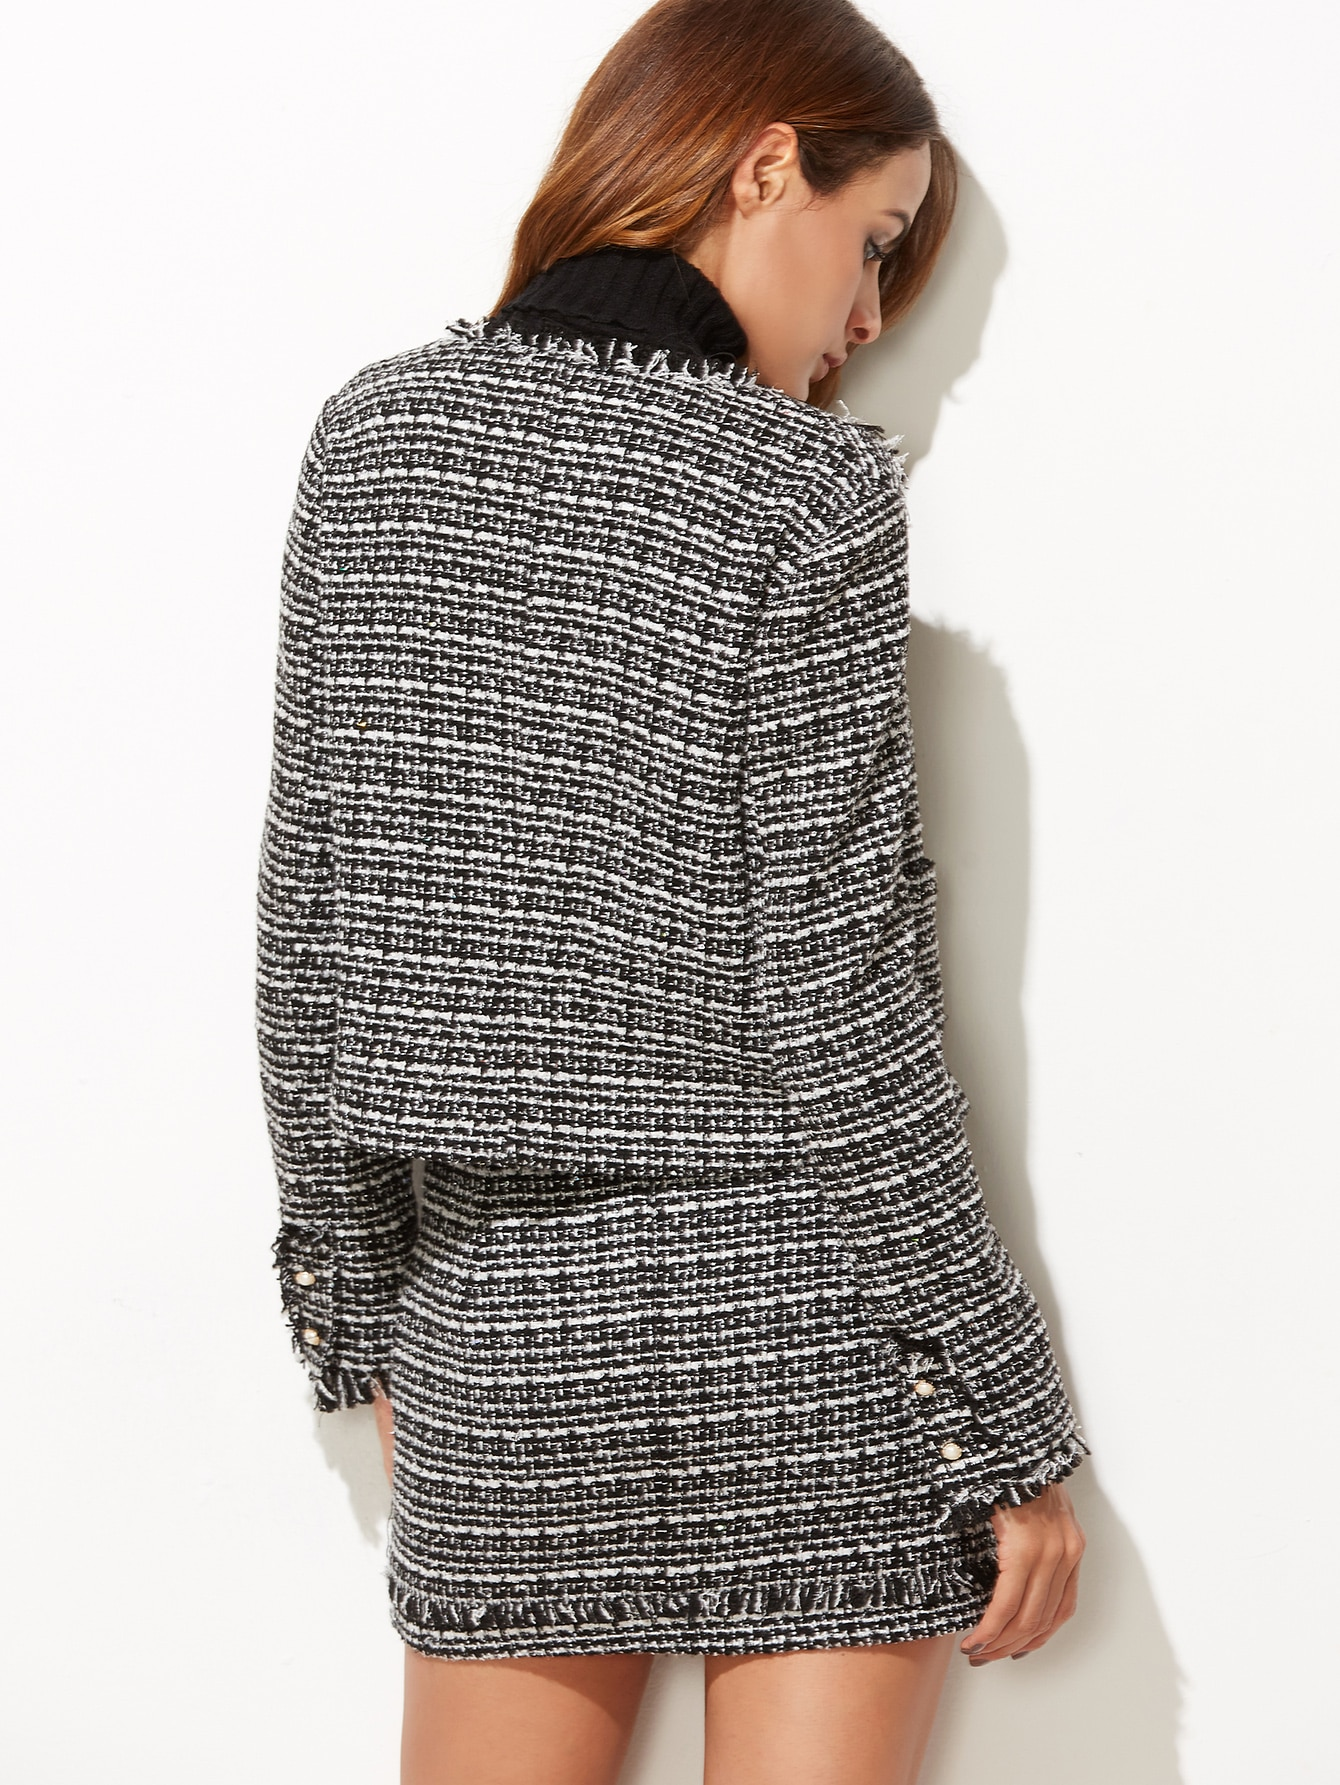 Find and save ideas about Tweed skirt on Pinterest. | See more ideas about Tweed, Winter work outfits and Work chic. tweed skirt, black top, white fur scarf add leather jacket or shirt add silver clutch or purse and black hat Find this Pin and more on My Style by Denise Lawrenz.